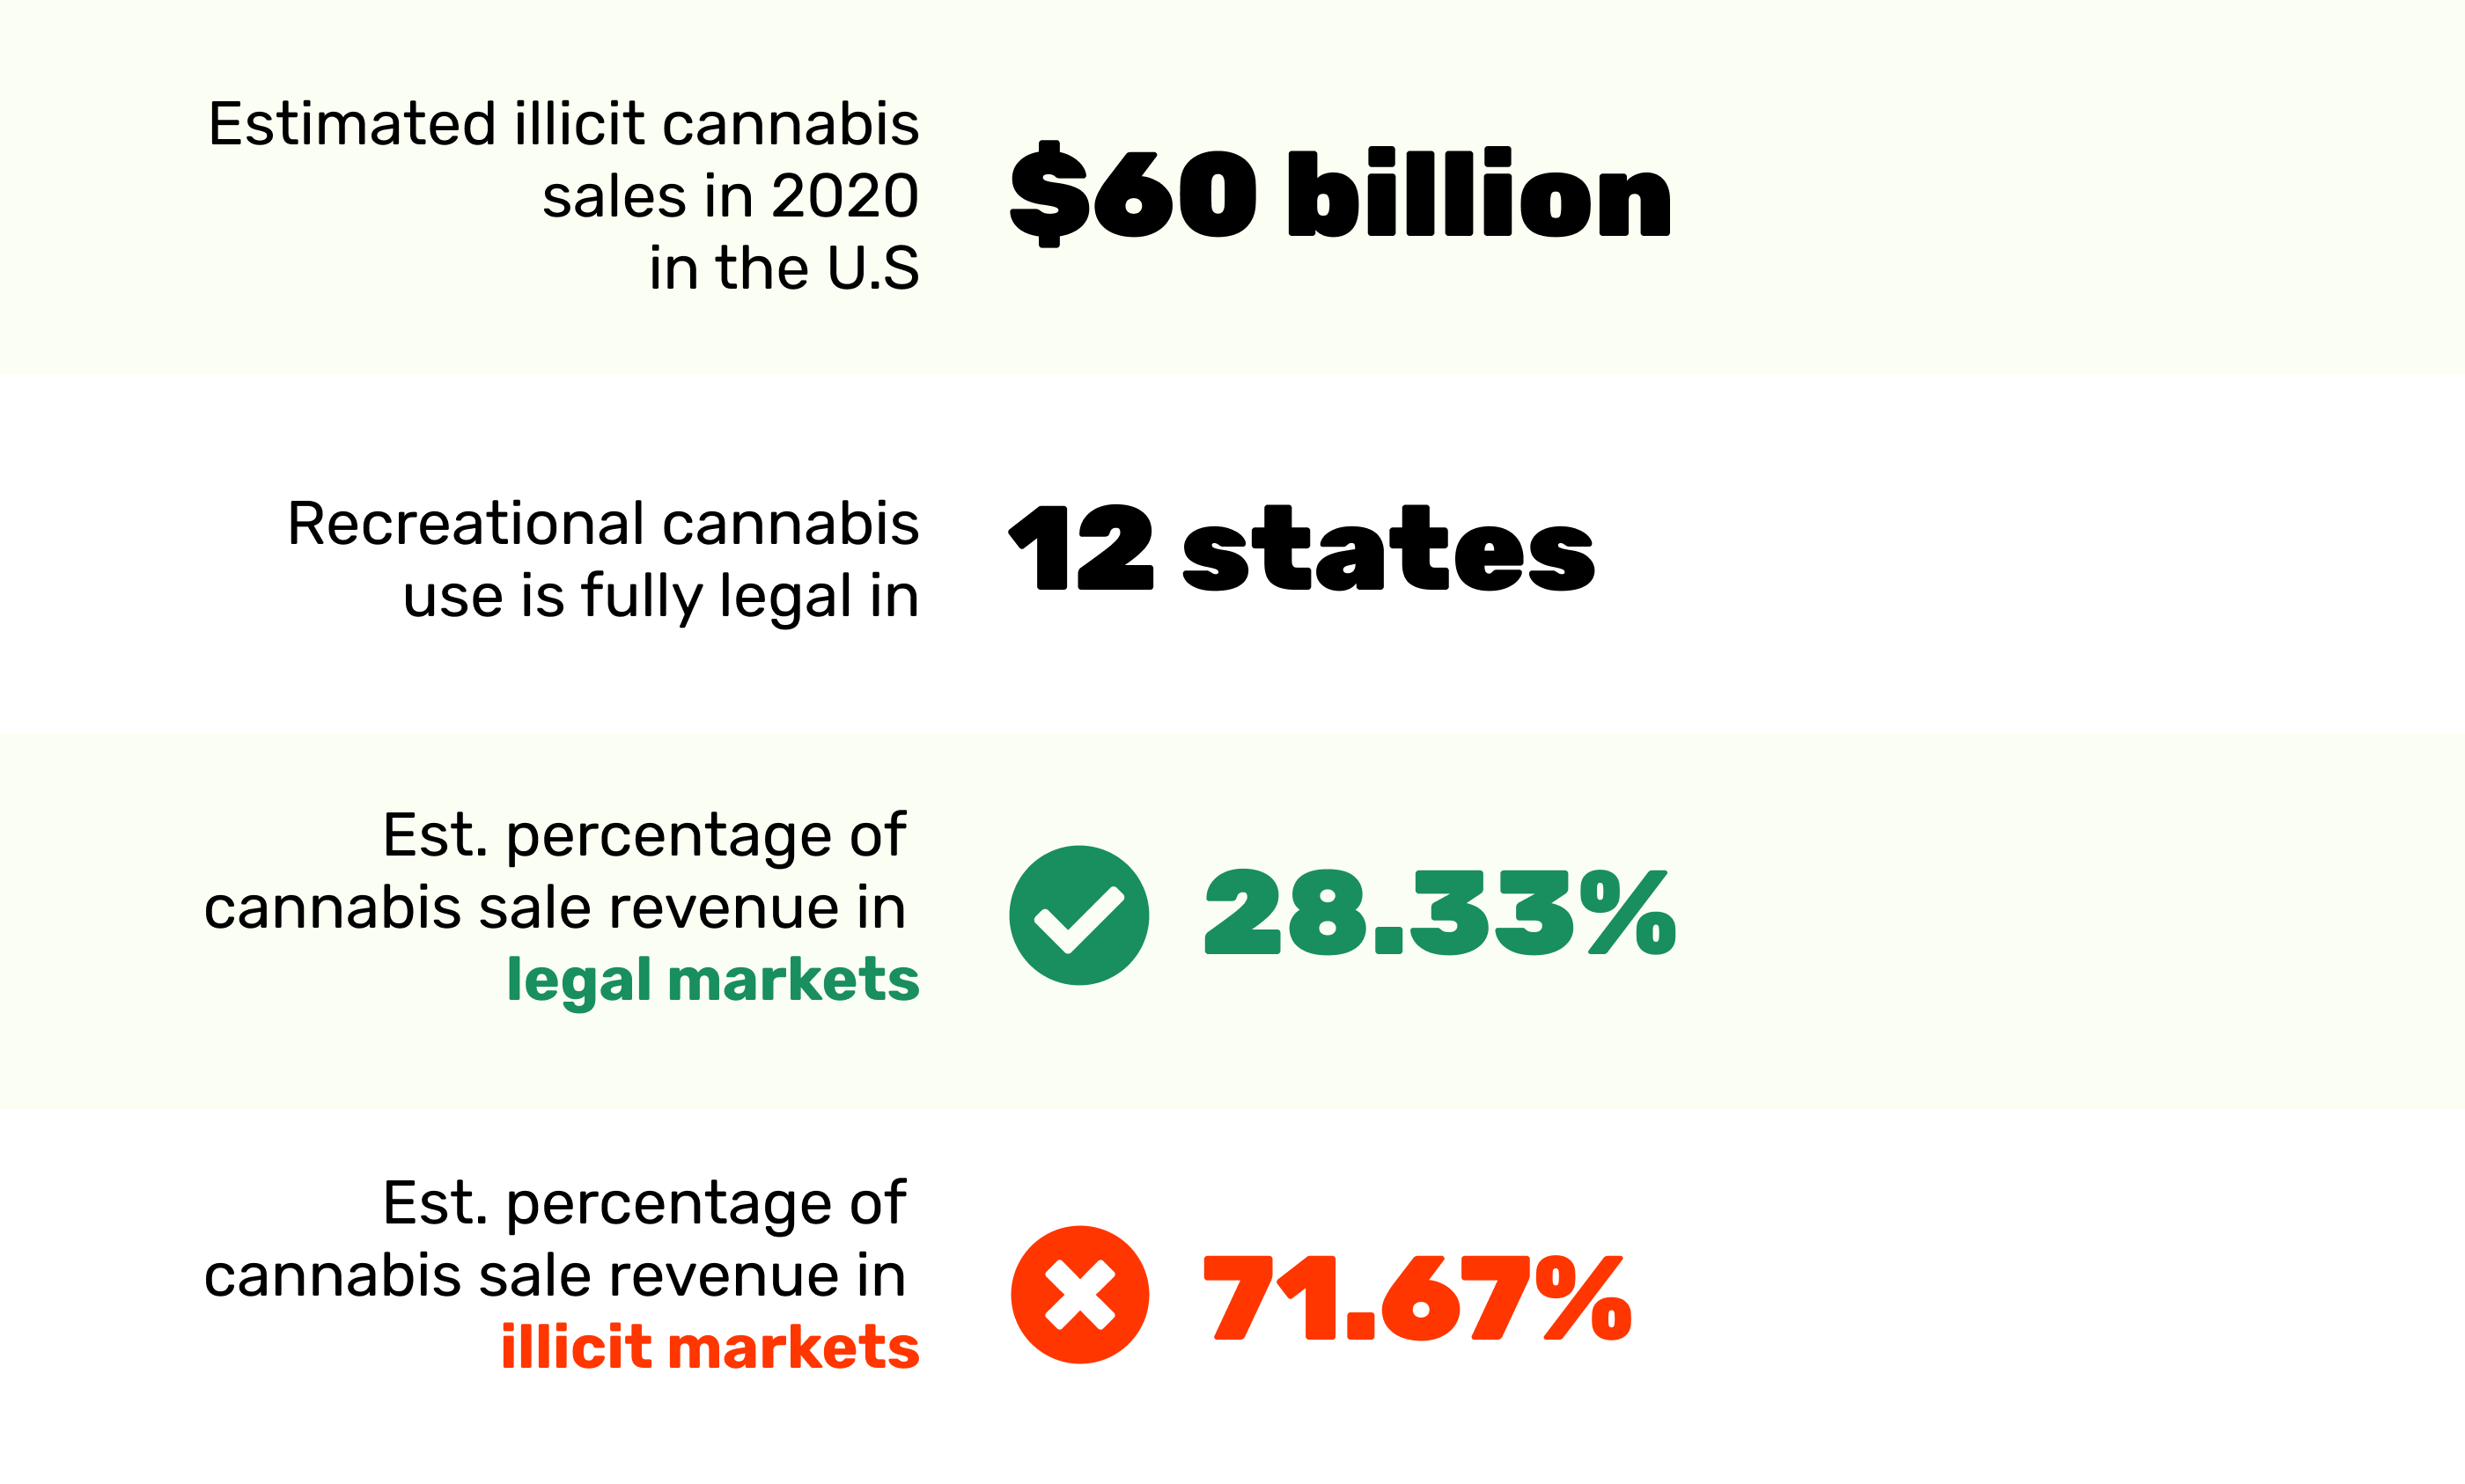 Legal v.s. illicit cannabis sales 2020 in the U.S.